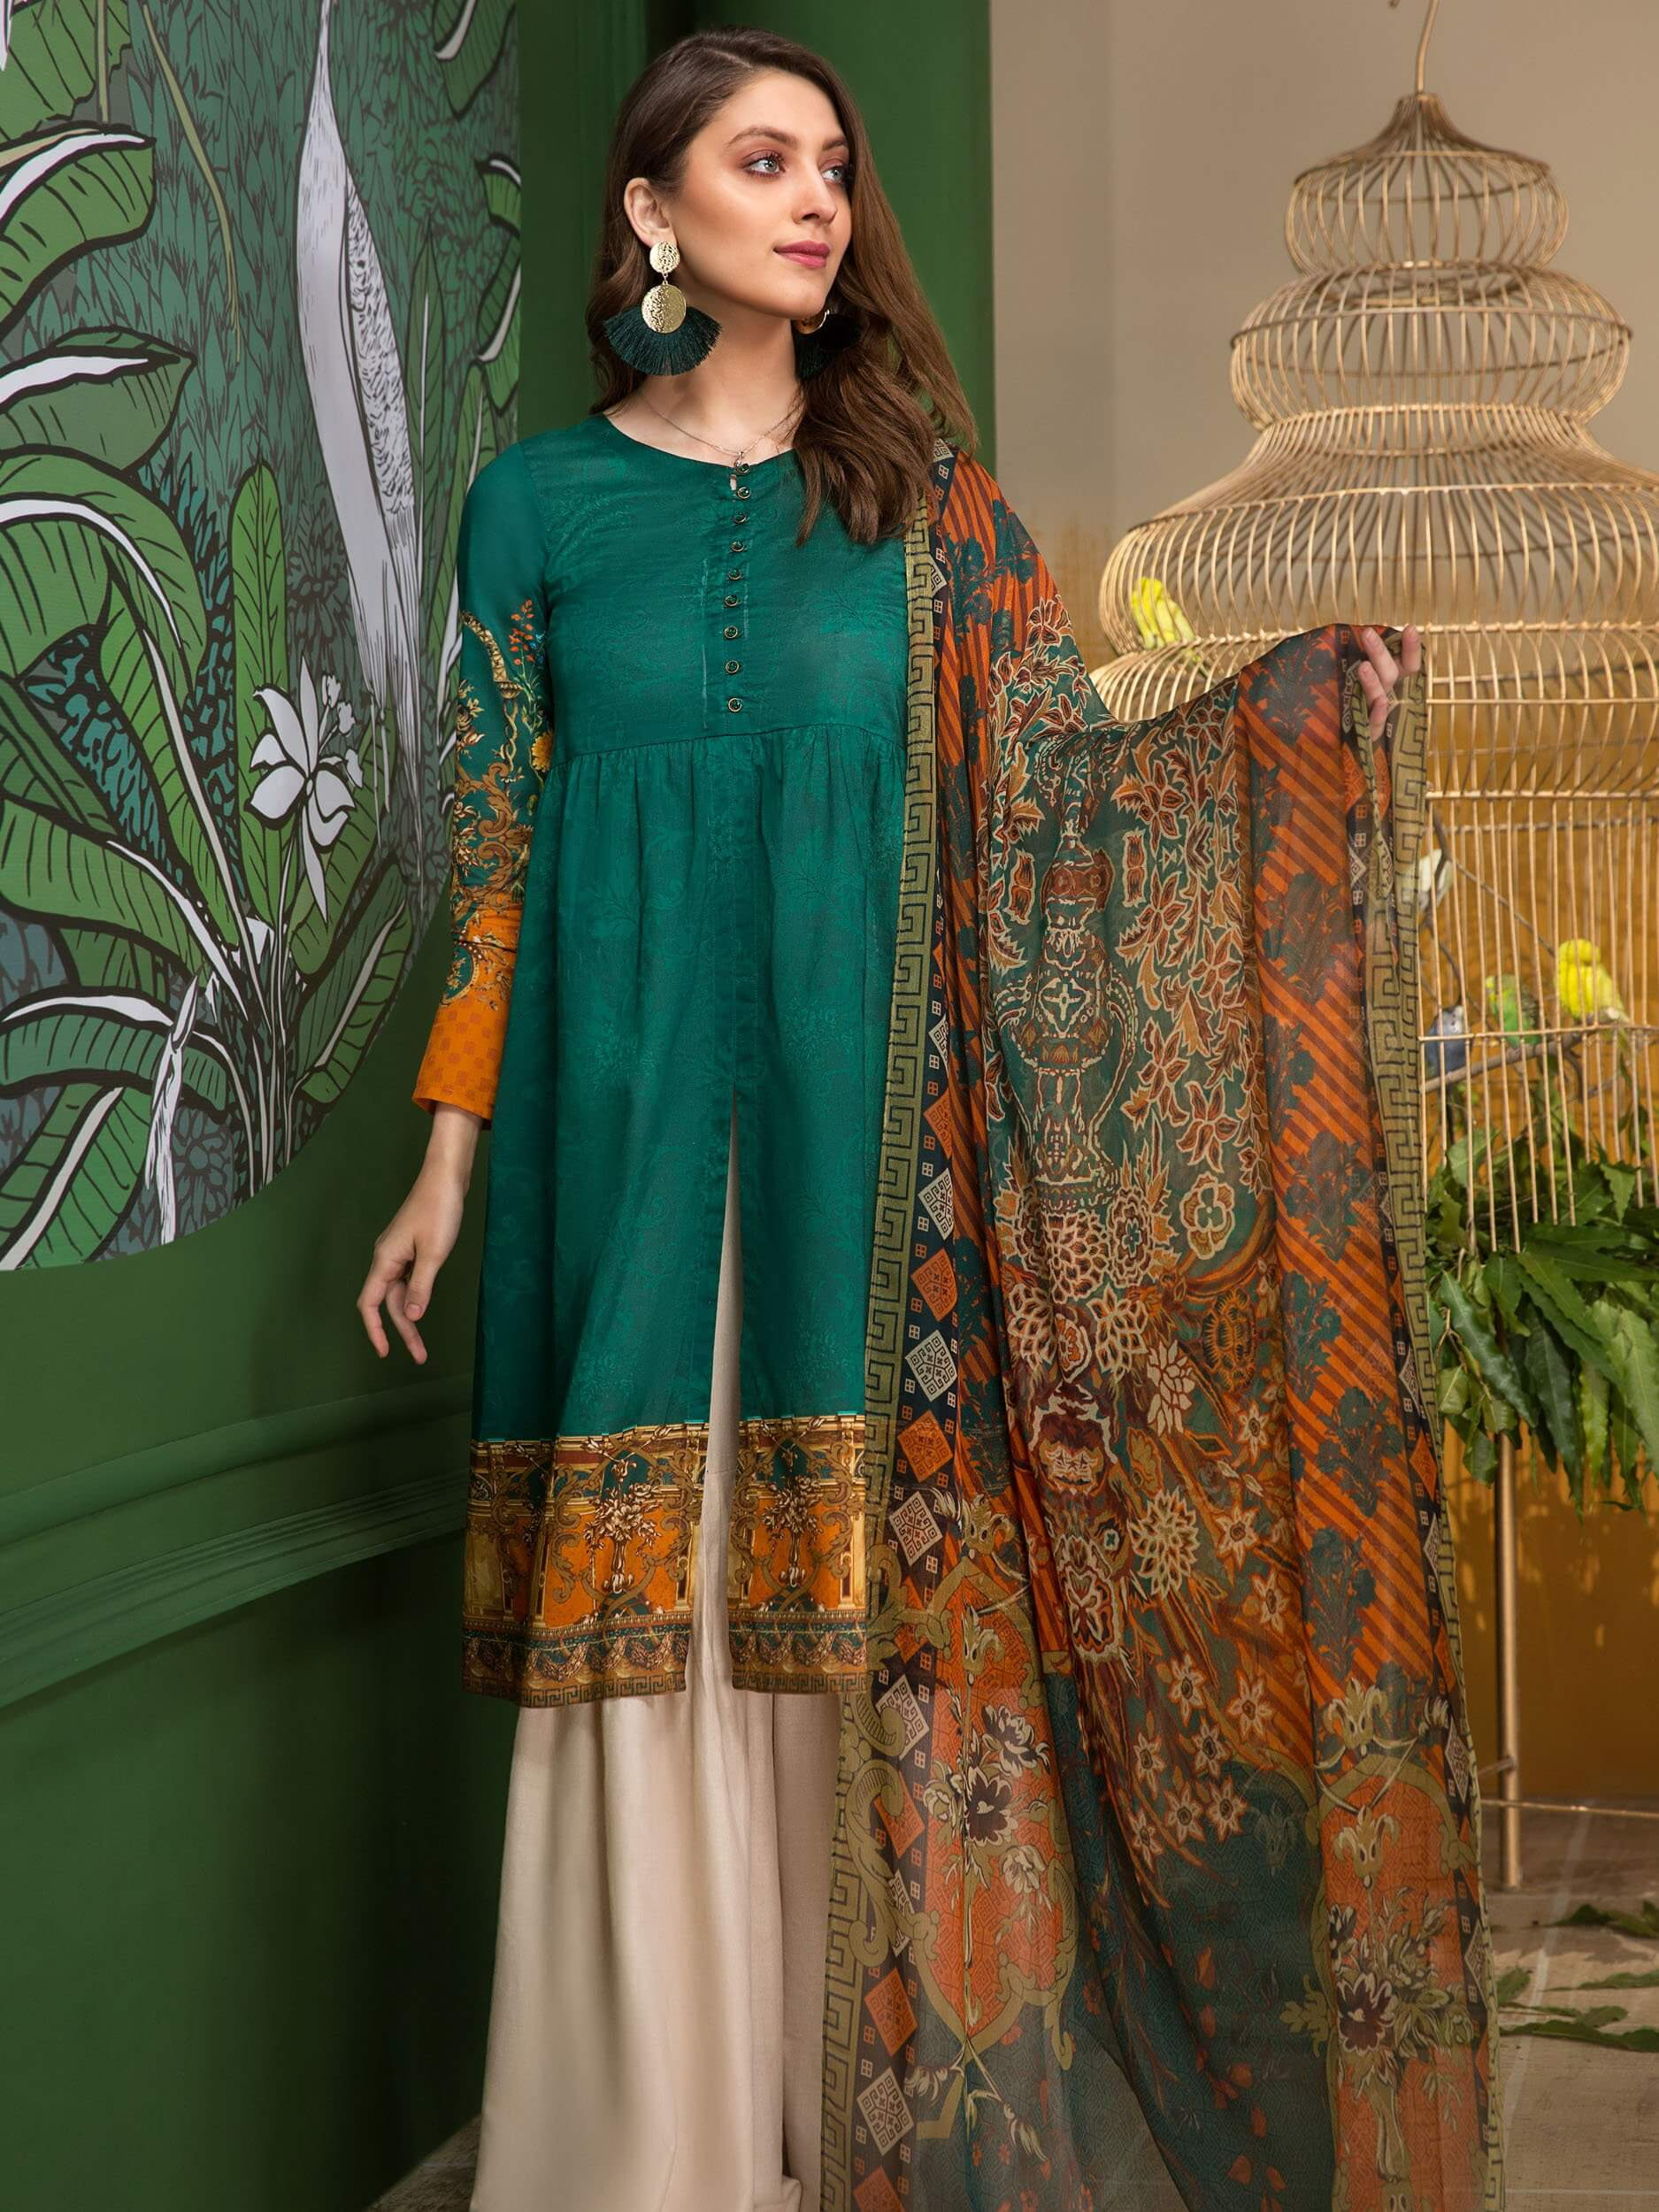 LimeLight Printed Lawn Unstitched 2PC Suit Summer 2019 U0612 Green - FaisalFabrics.pk